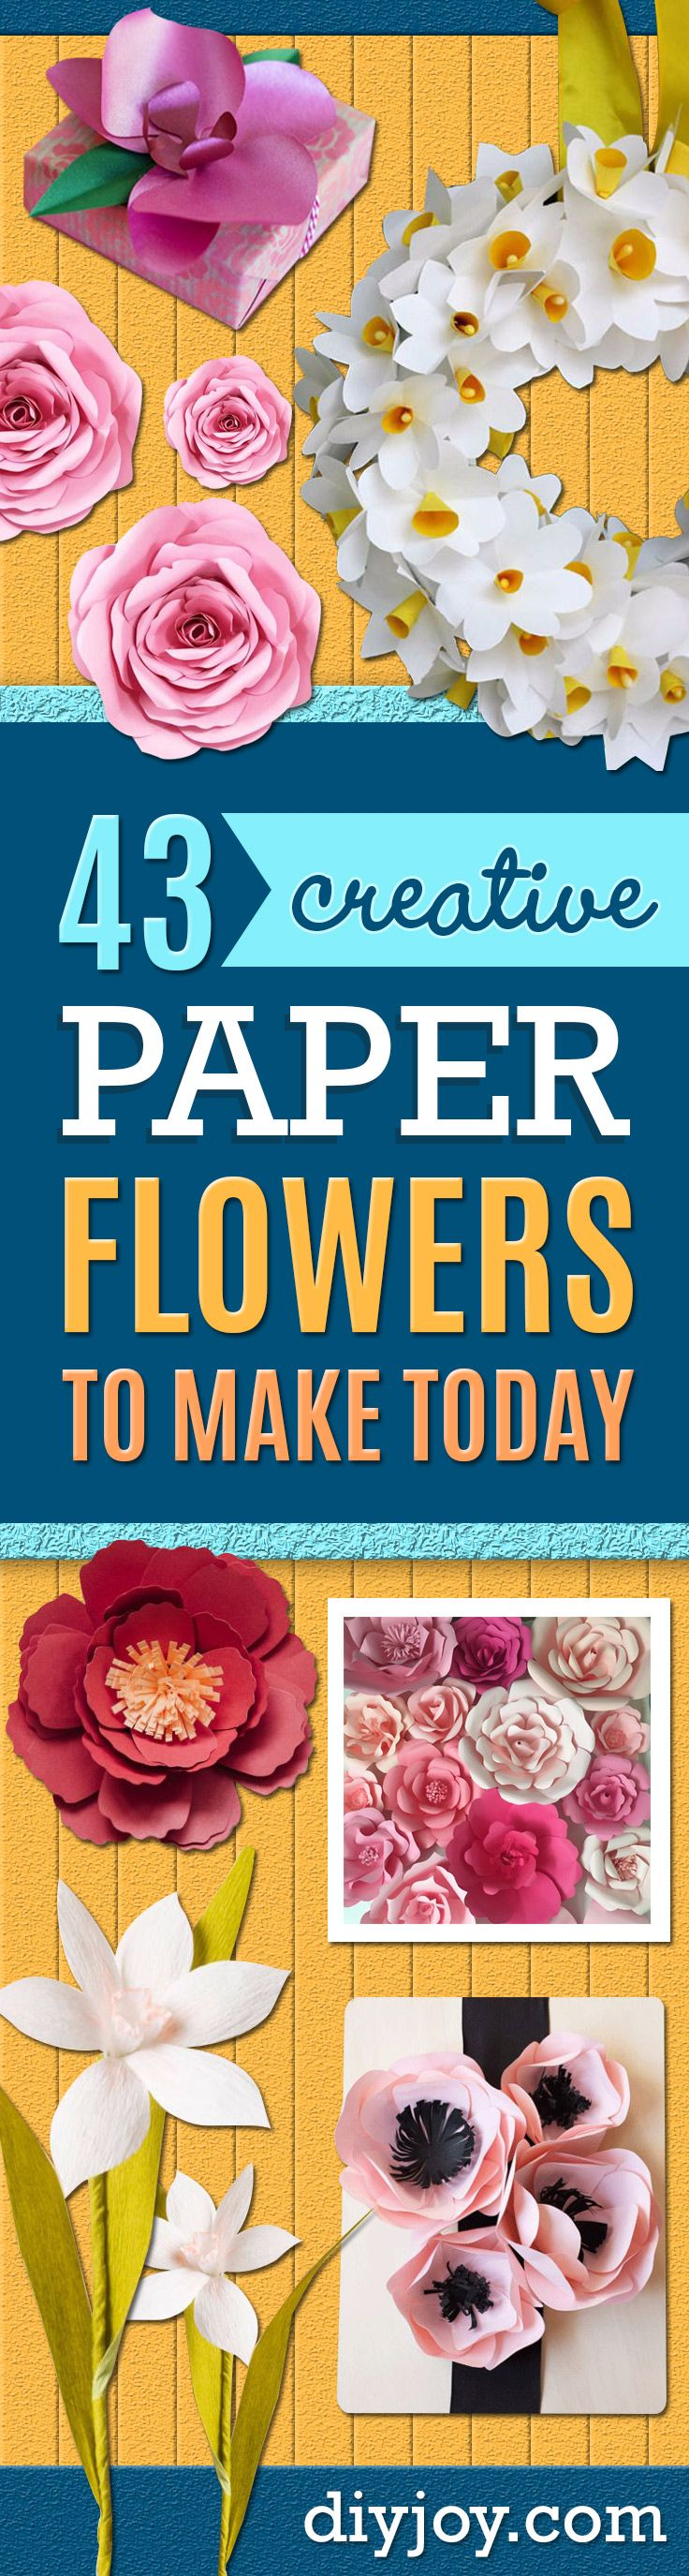 best cool paper crafts images on pinterest bricolage build